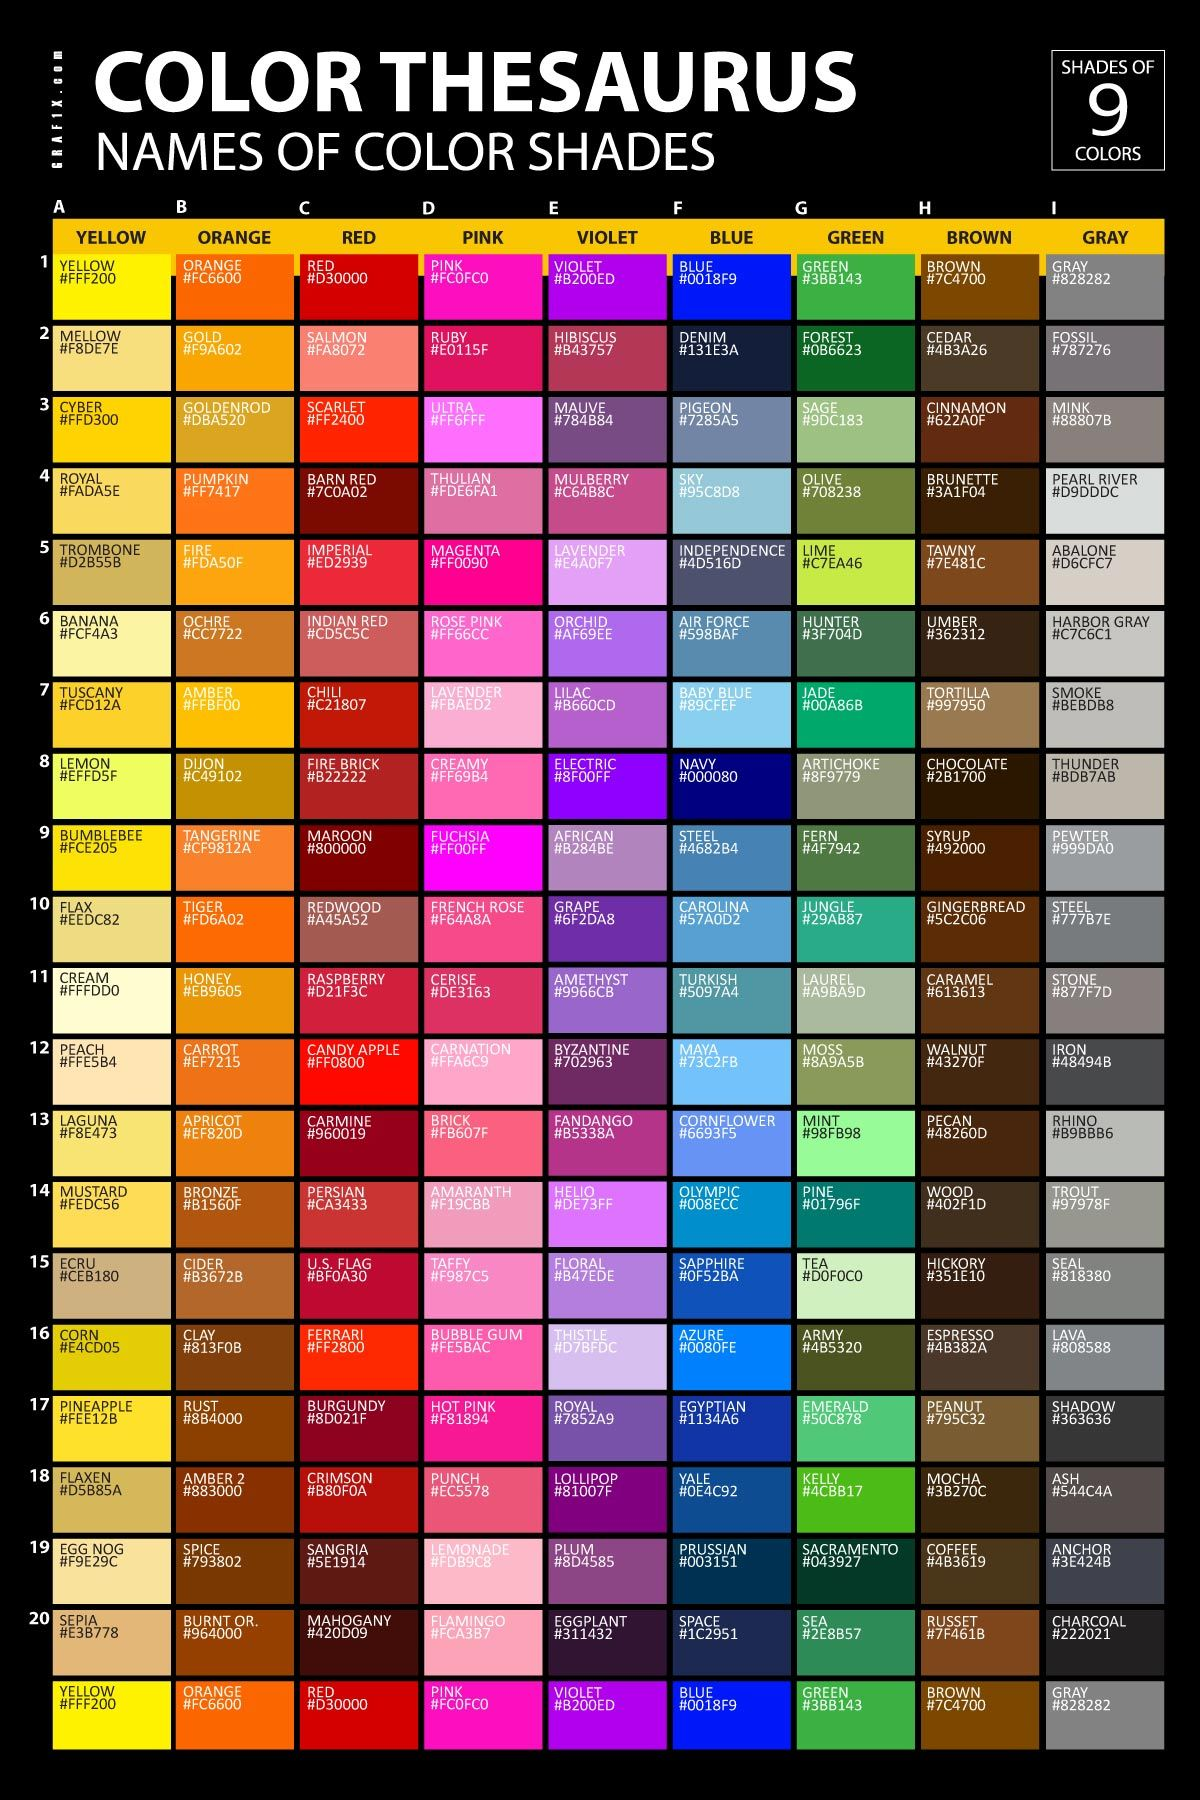 Names Of The Color Shades Poster Get A Copy At GrafXCom  Color